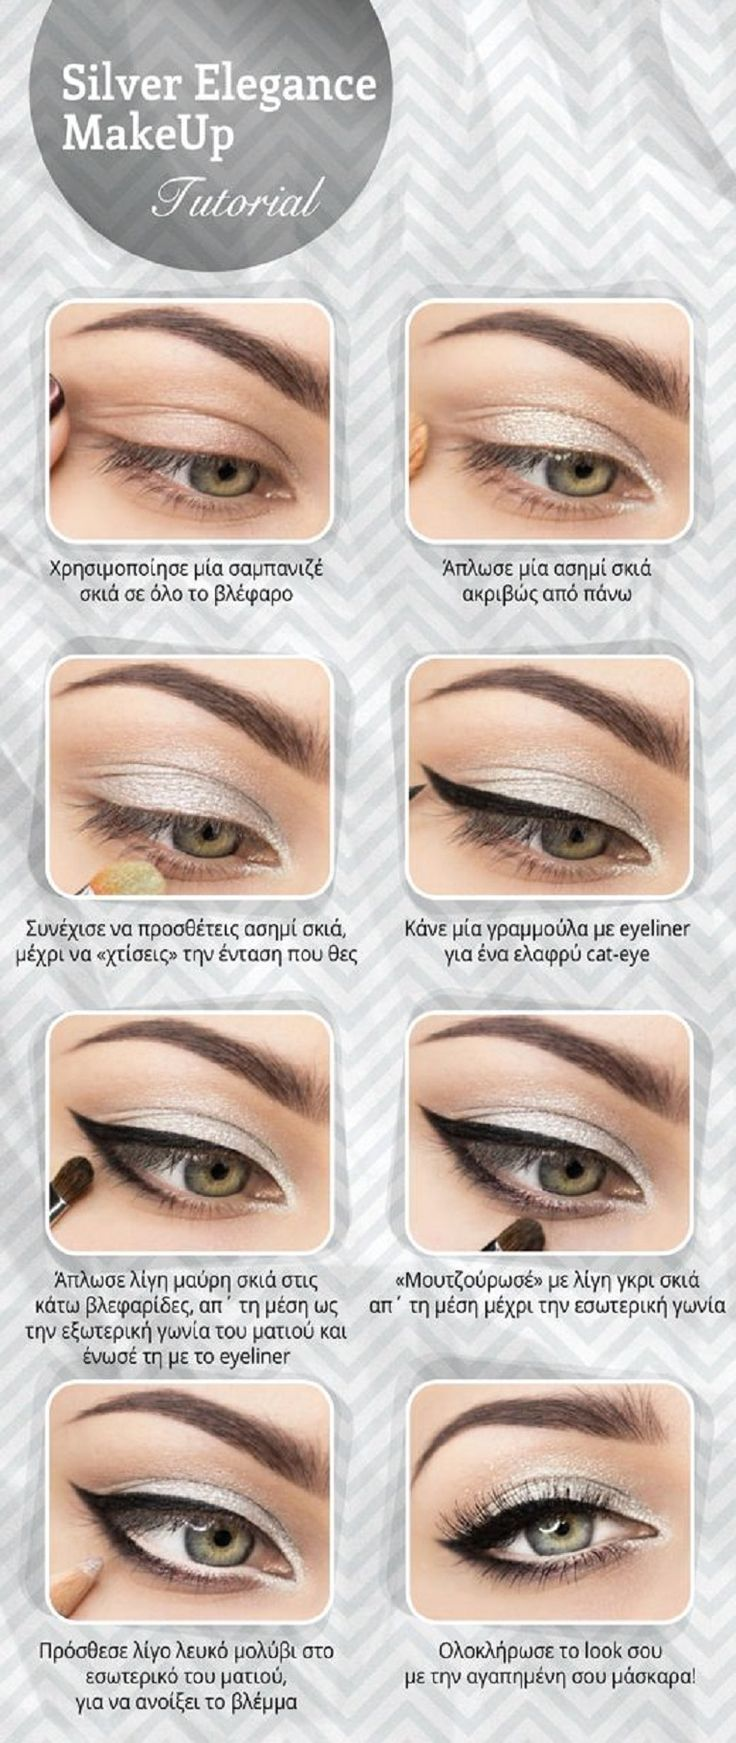 Silver Elegance MakeUp Tutorial - 8 Silver Eye Makeup Tutorials | GleamItUp